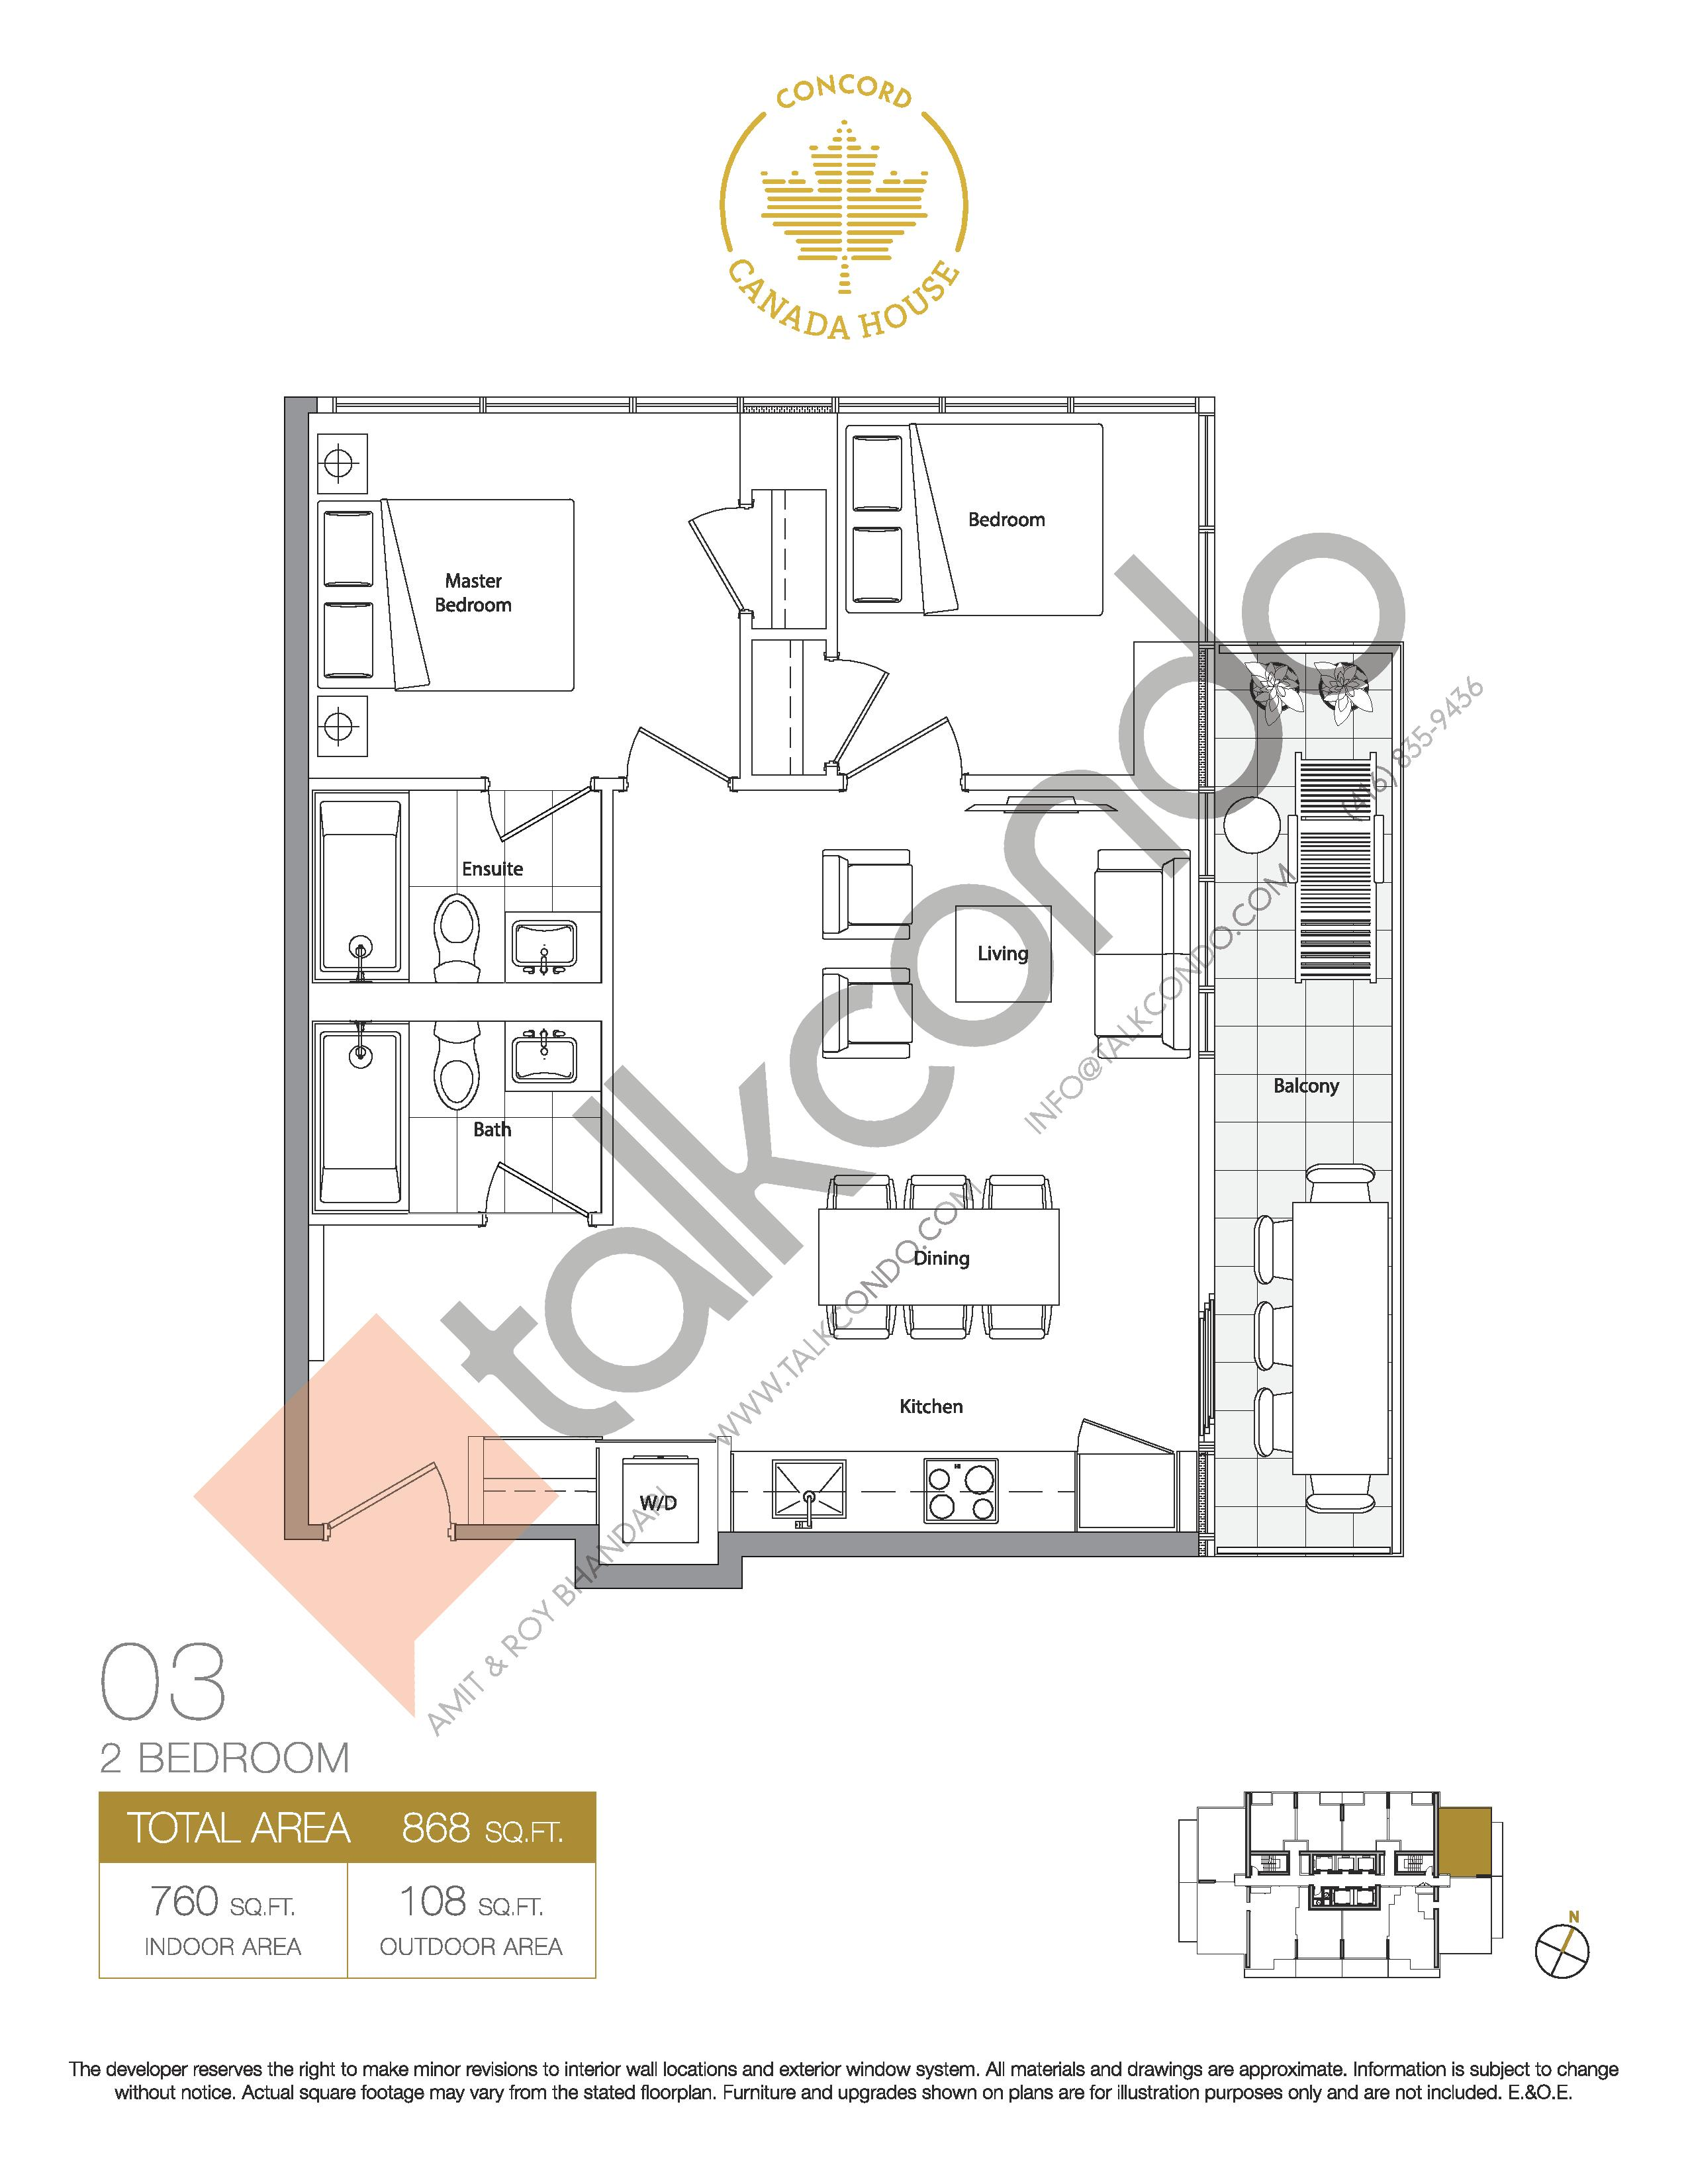 03 - East Tower Floor Plan at Concord Canada House Condos - 760 sq.ft